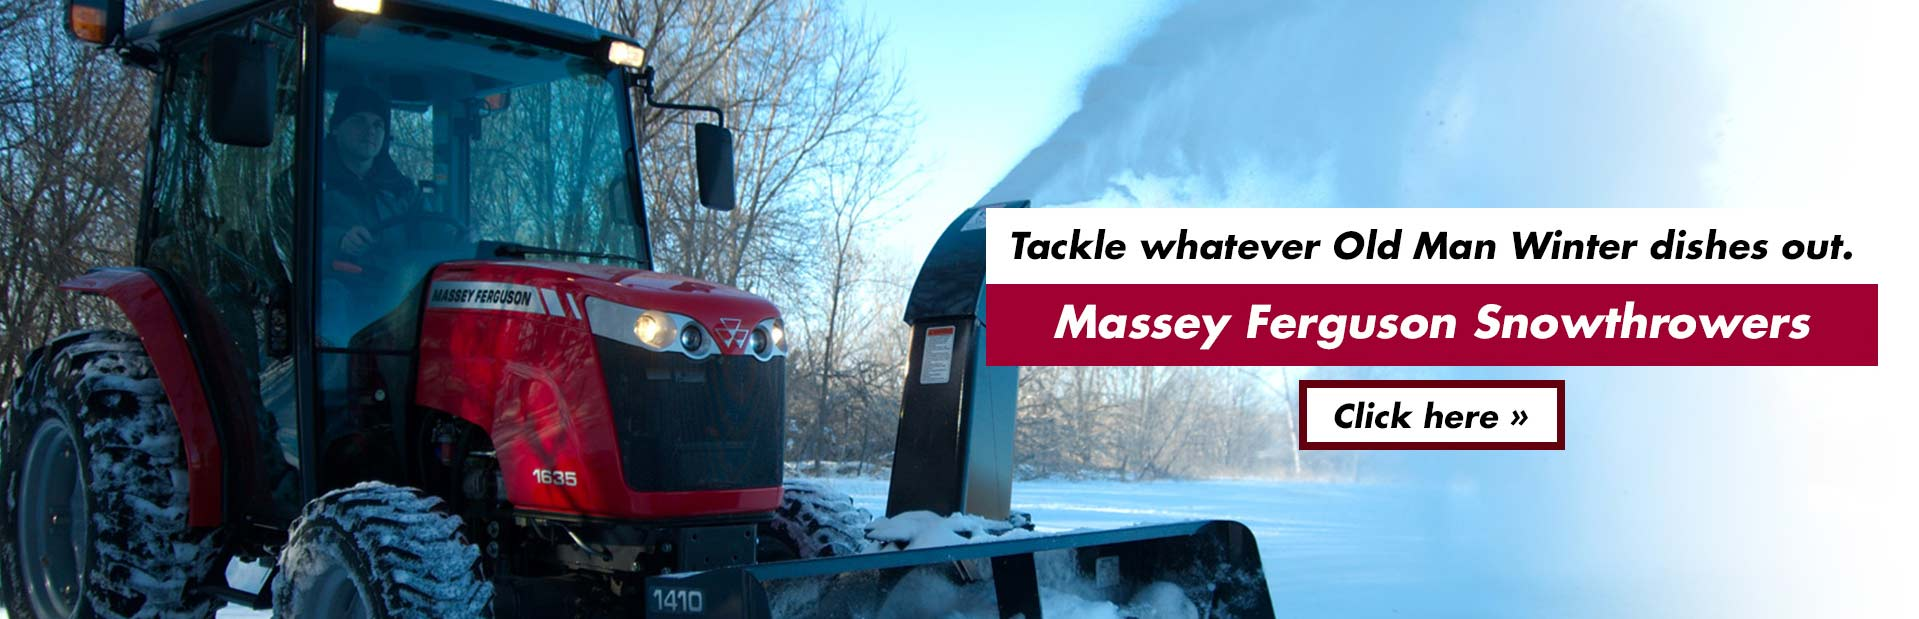 Tackle whatever Old Man Winter dishes out with Massey Ferguson snowthrowers! Click here to view our